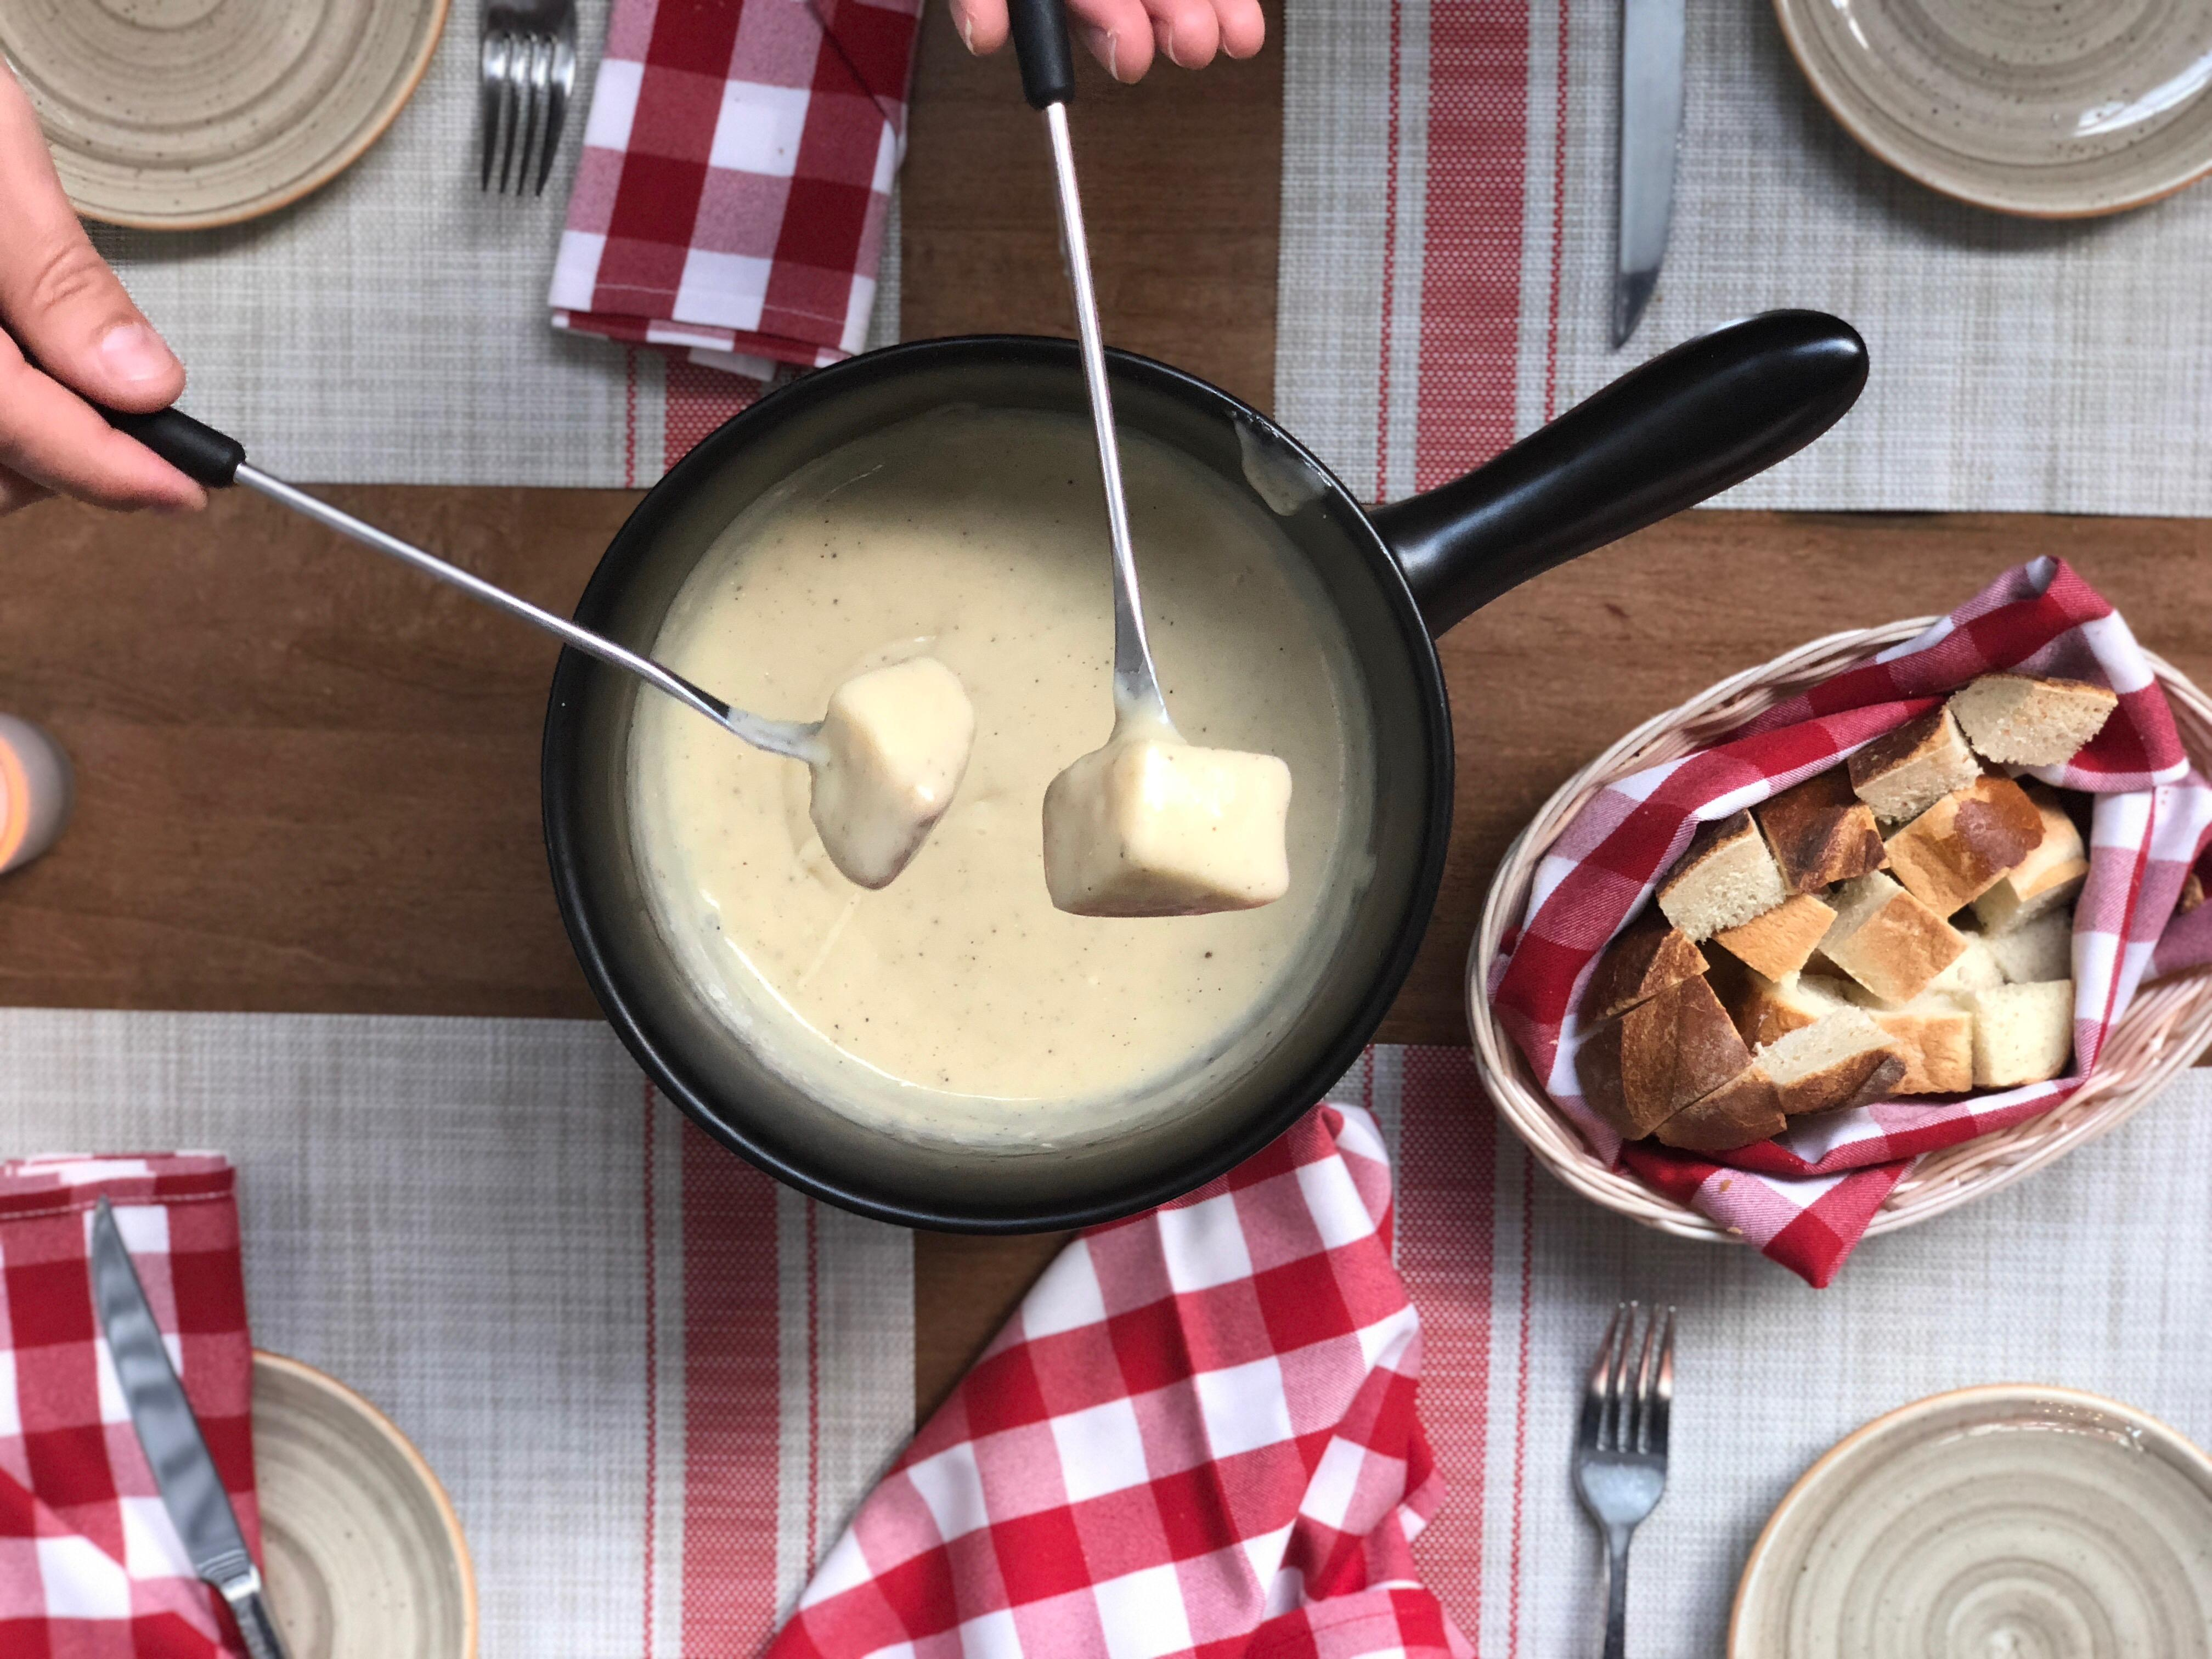 "<p>Last but not least, of course DC's Swiss restaurant offers this après ski staple. Stable makes three versions—a traditional Swiss cheese fondue using a blend of Schlossberger Old, Schlossberger Young and Vacherin cheeses cooked with garlic and white wine; a version that also includes dried garlic and black pepper cheese; and one spiked with Poire Williams liqueur. Each requires a two-person minimum for ordering and is served with housemade white bread for dipping. The Swiss-born chef tested many cheese blends before settling on the Schlossberger cheeses produced by a fifth-generation cheese-maker in the Emmental Valley. To find your own perfect blend of cheeses, visit <a  href=""http://cheesesofeurope.com"" target=""_blank"">cheesesofeurope.com</a>{&nbsp;}for tips and recipes.{&nbsp;}(Image: Courtesy Stable)</p>"